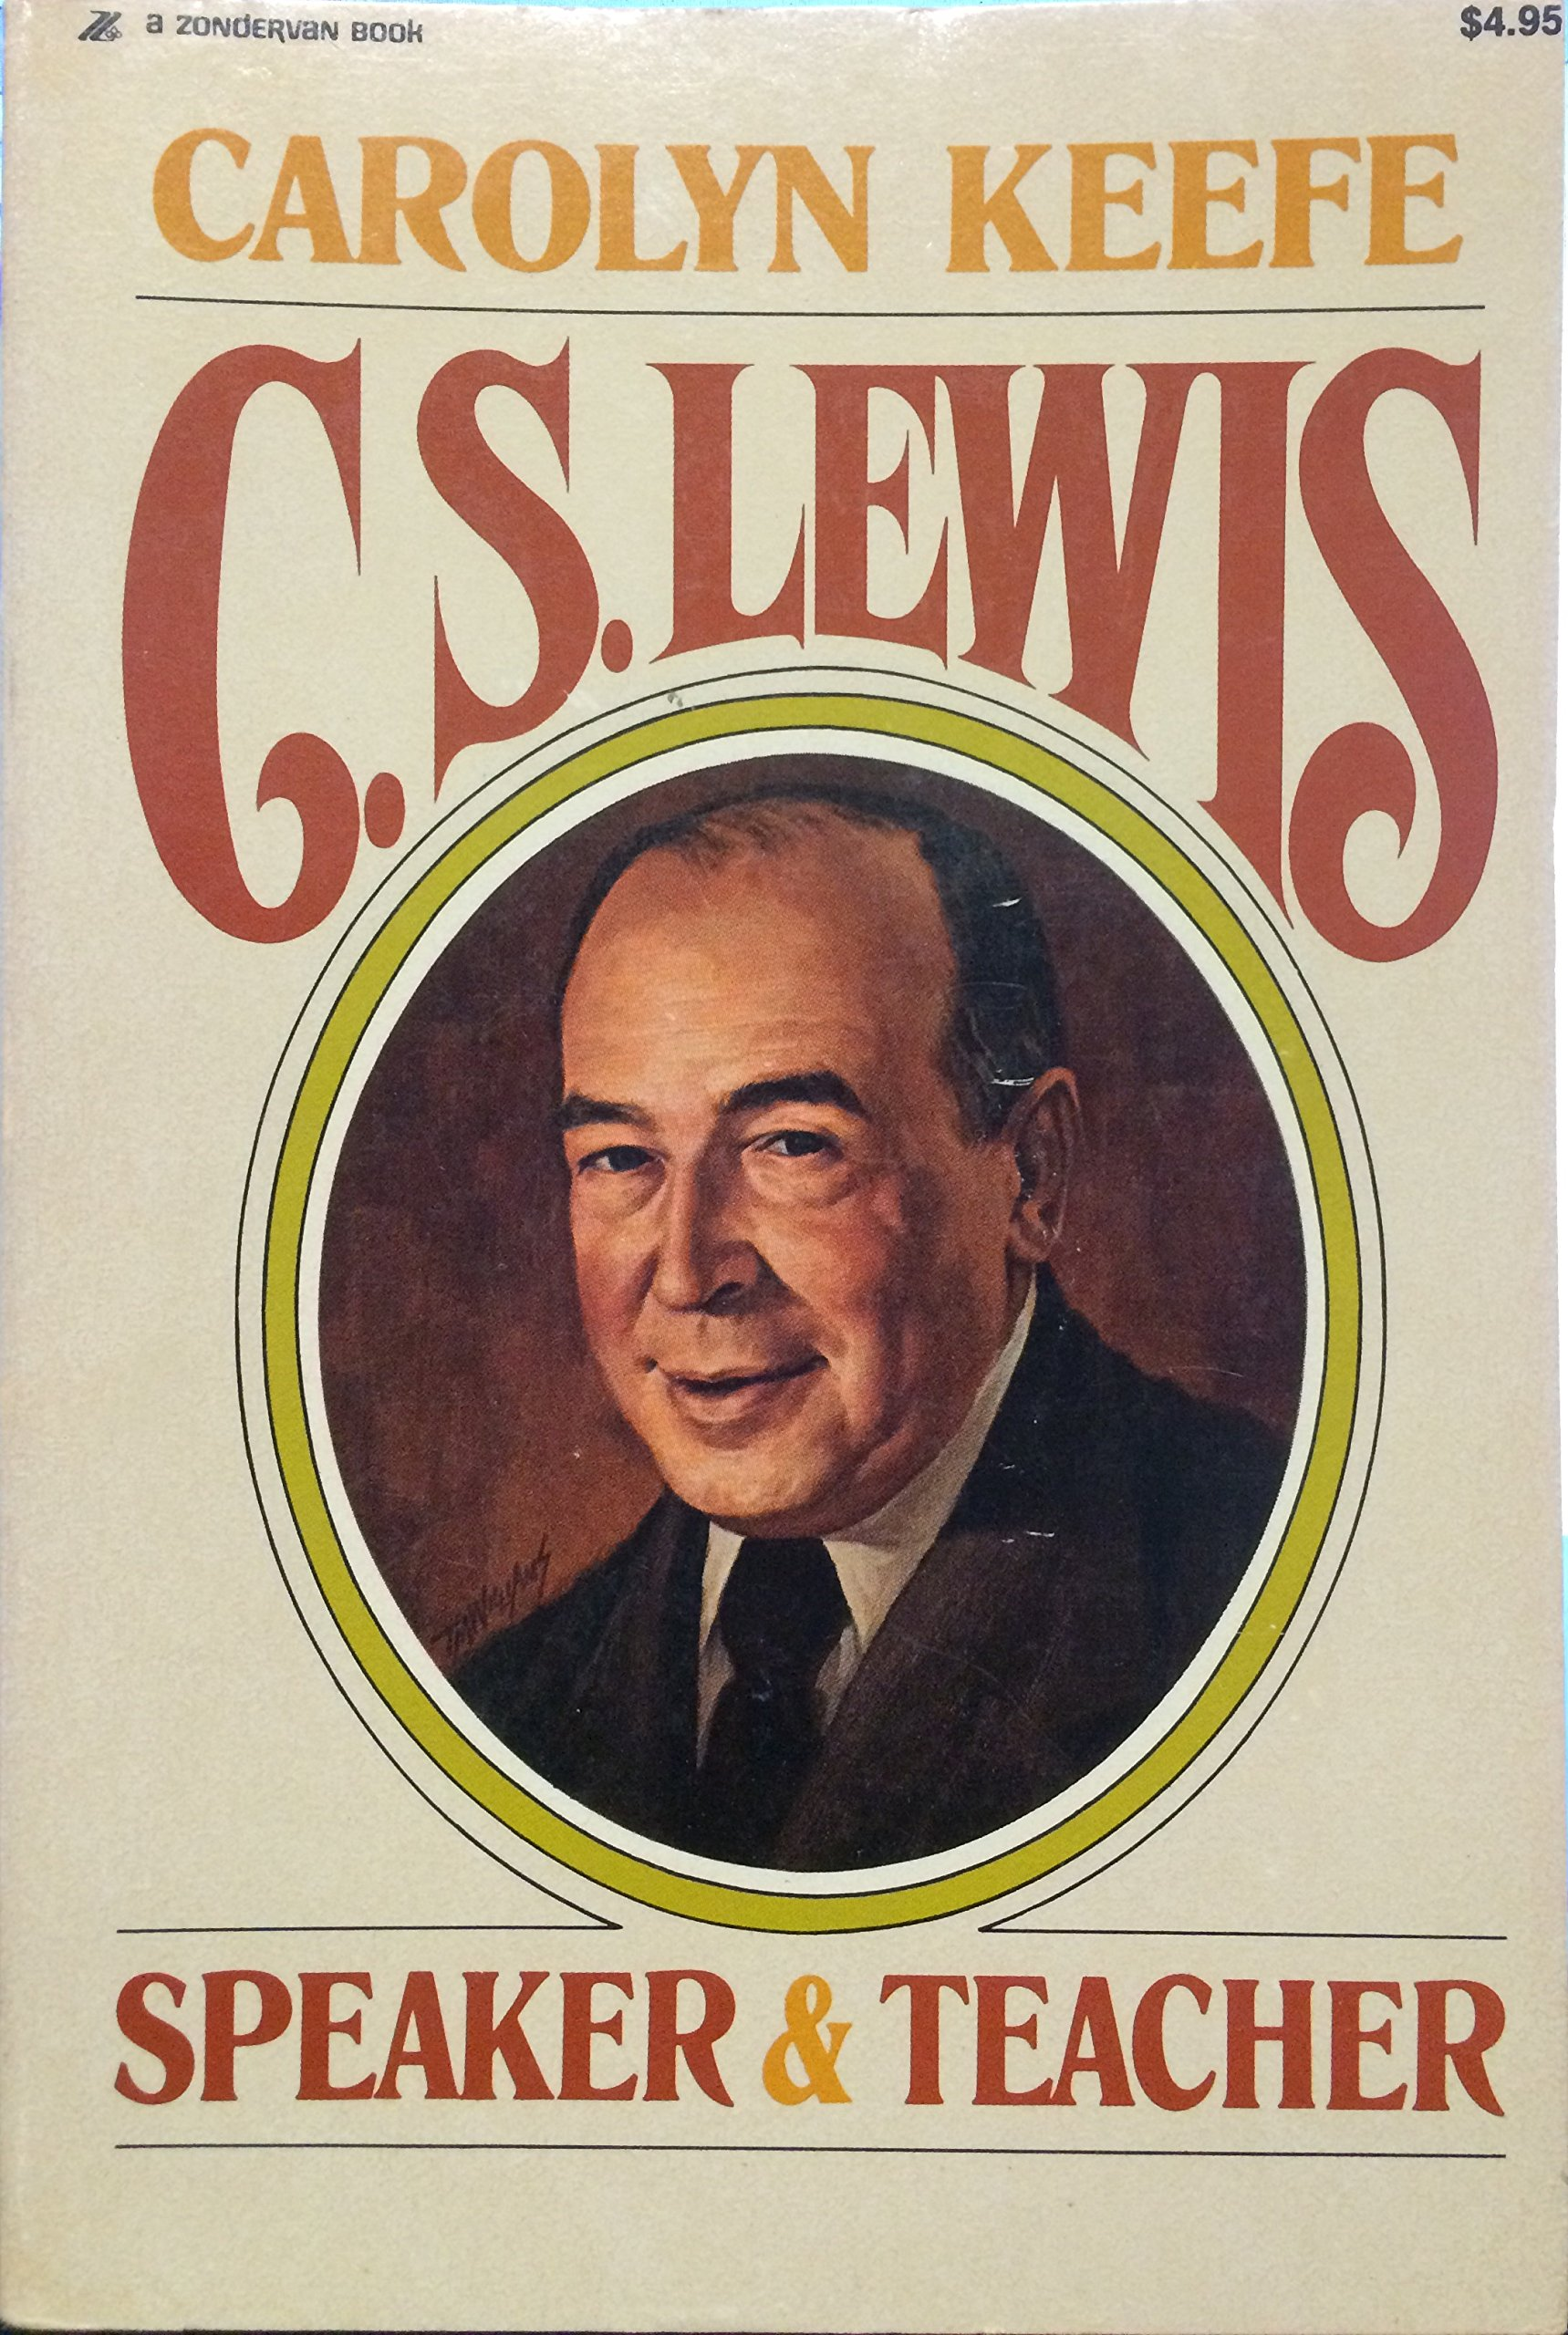 C.S. Lewis: Speaker and Teacher, Carolyn Keefe